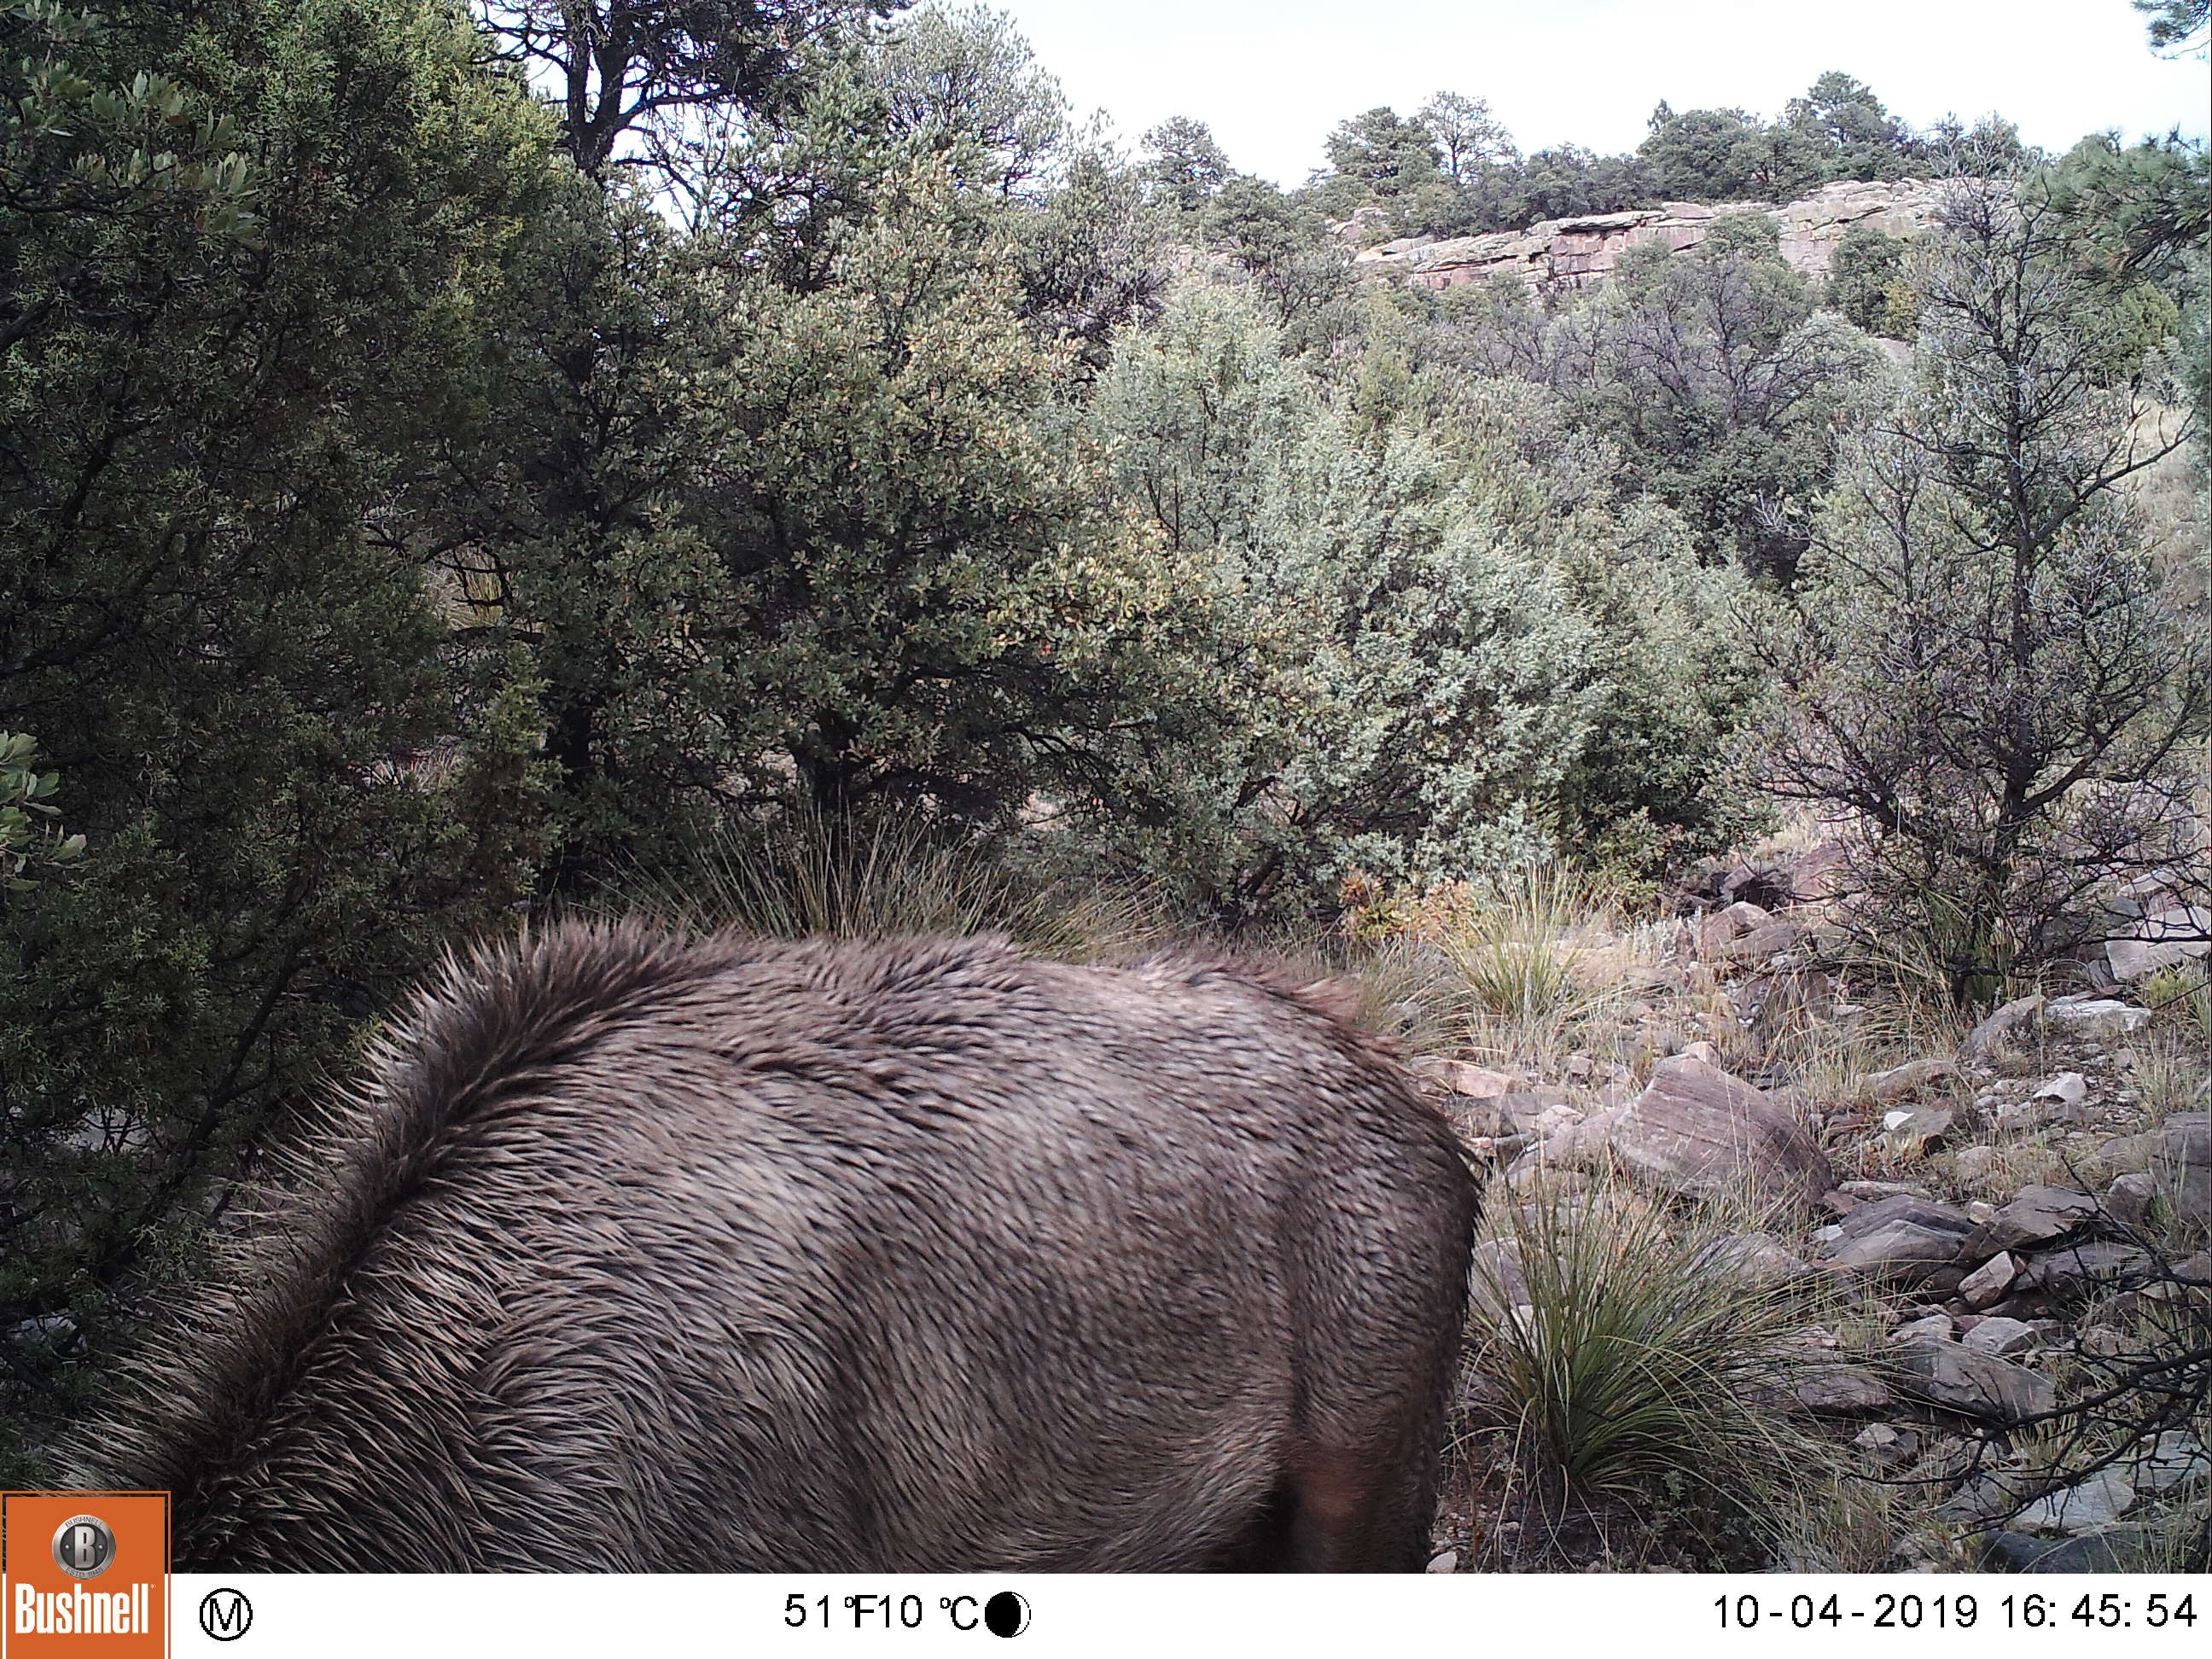 path with body of elk in foreground with mountain lion hiding near tree on right